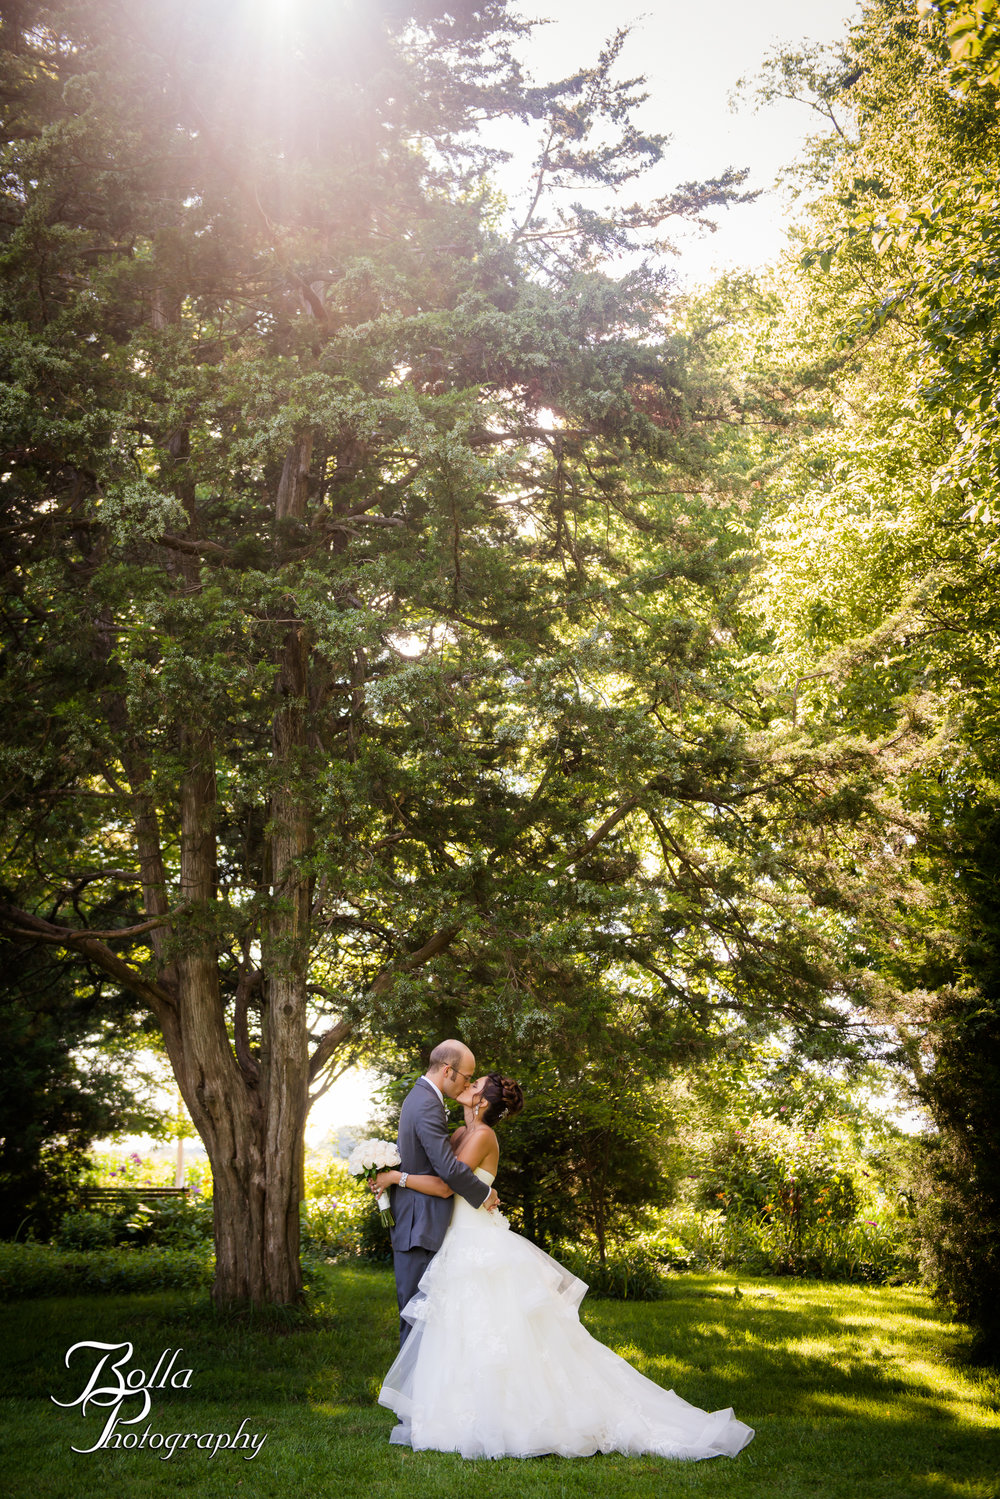 Bolla_photography_edwardsville_wedding_photographer_st_louis_weddings_Highland_outdoor_ceremony_Louis_Latzer_Homestead_Theims-0003.jpg